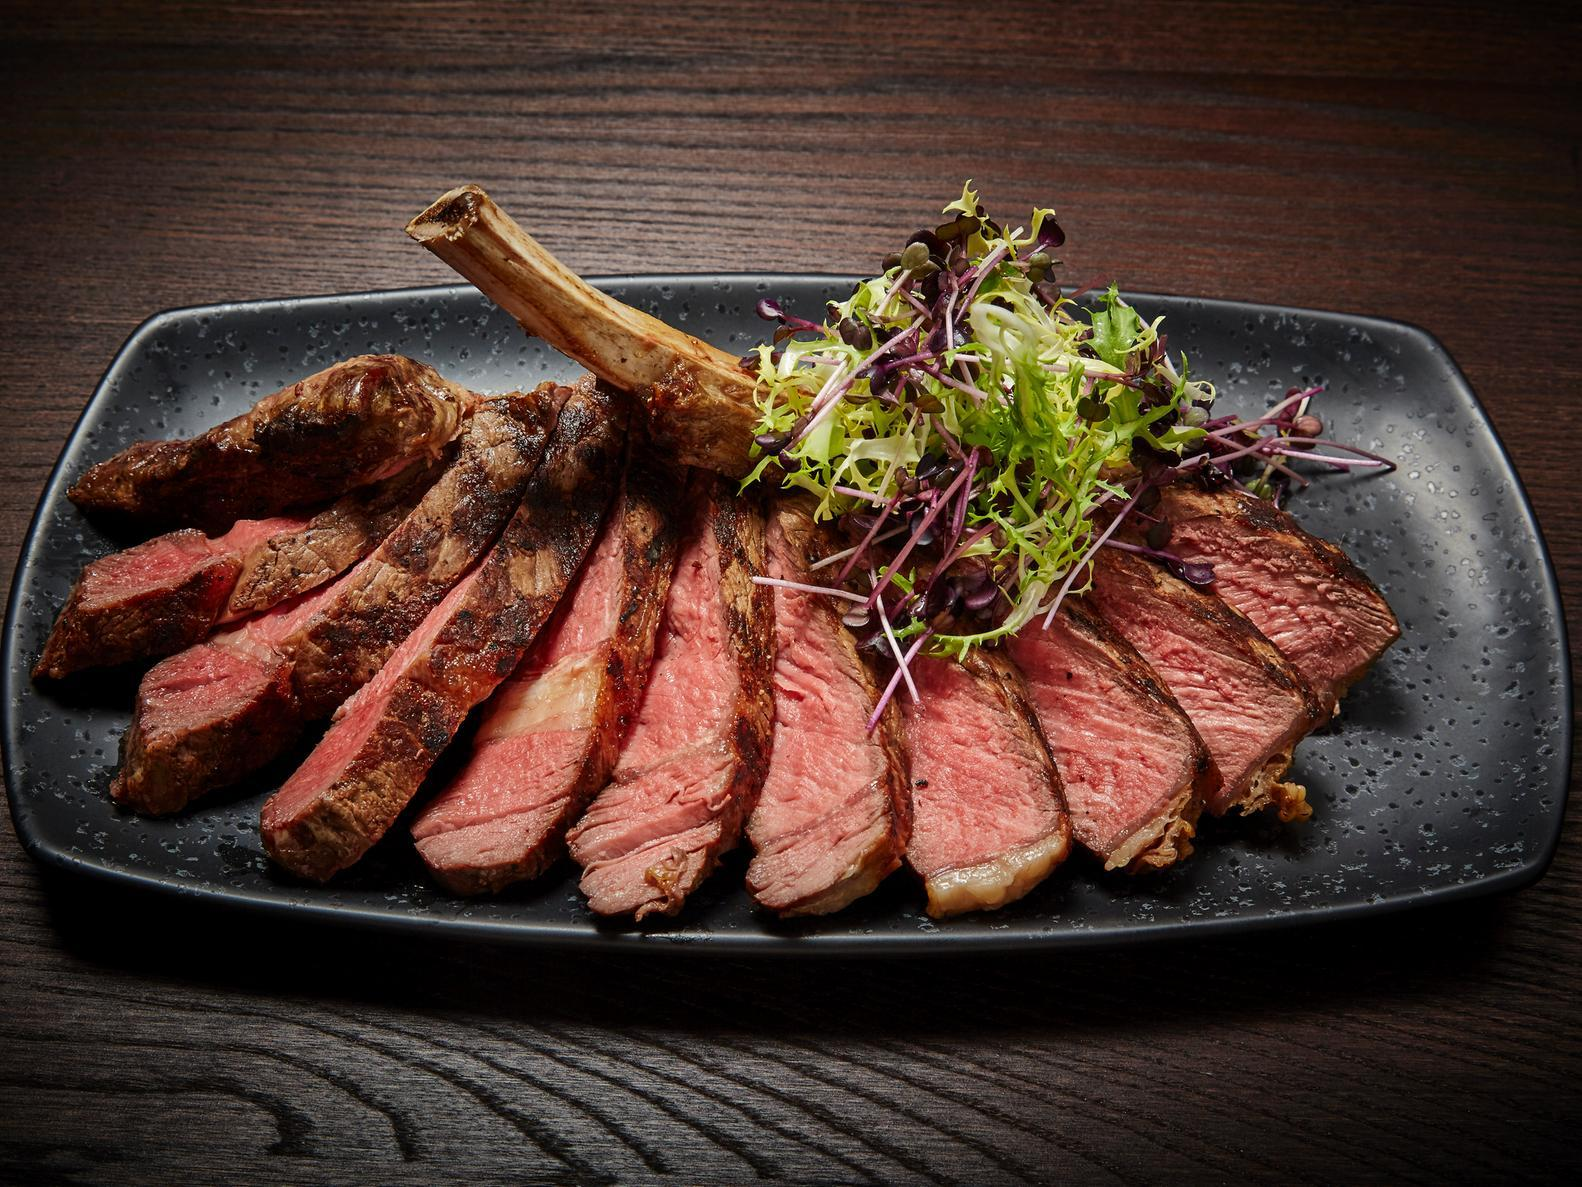 Chophaus - Contemporary steakhouse and grill to open in Leeds suburb